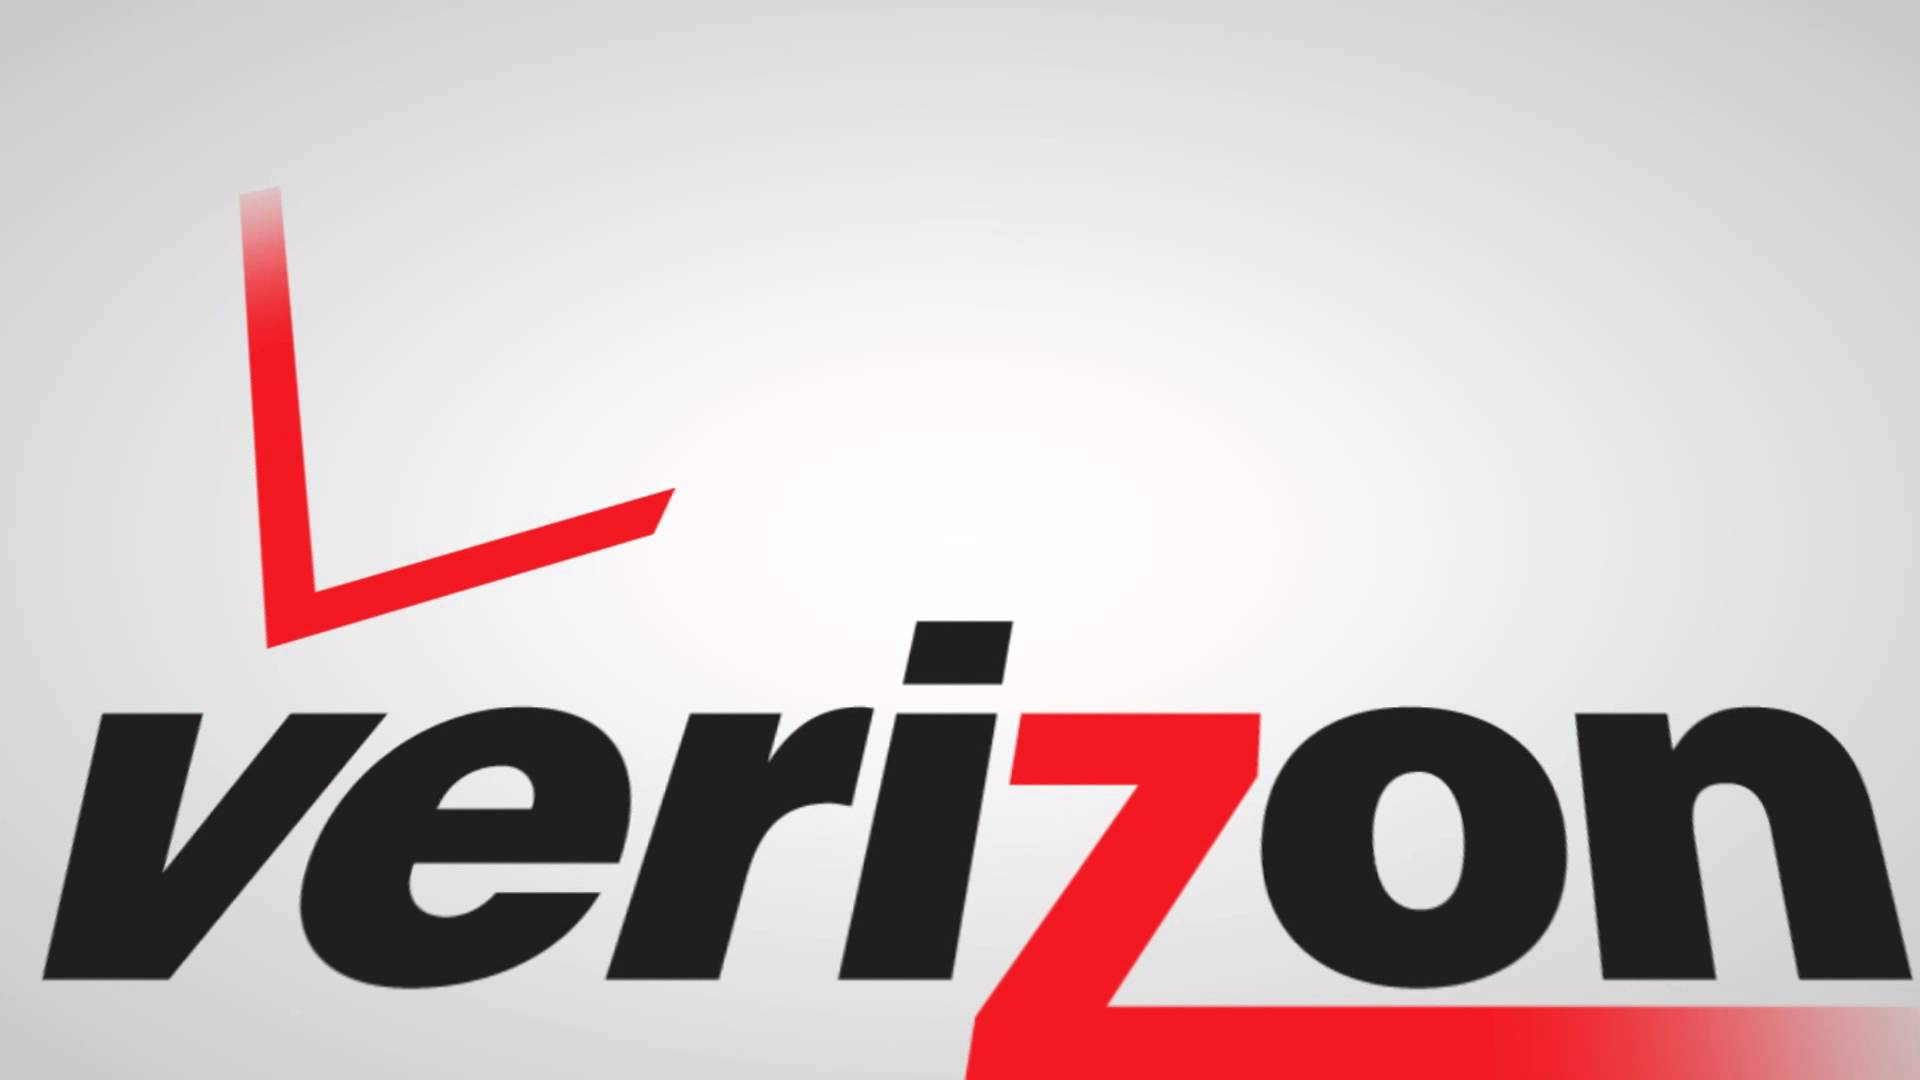 Verizon makes its expensive plans more affordable for US military